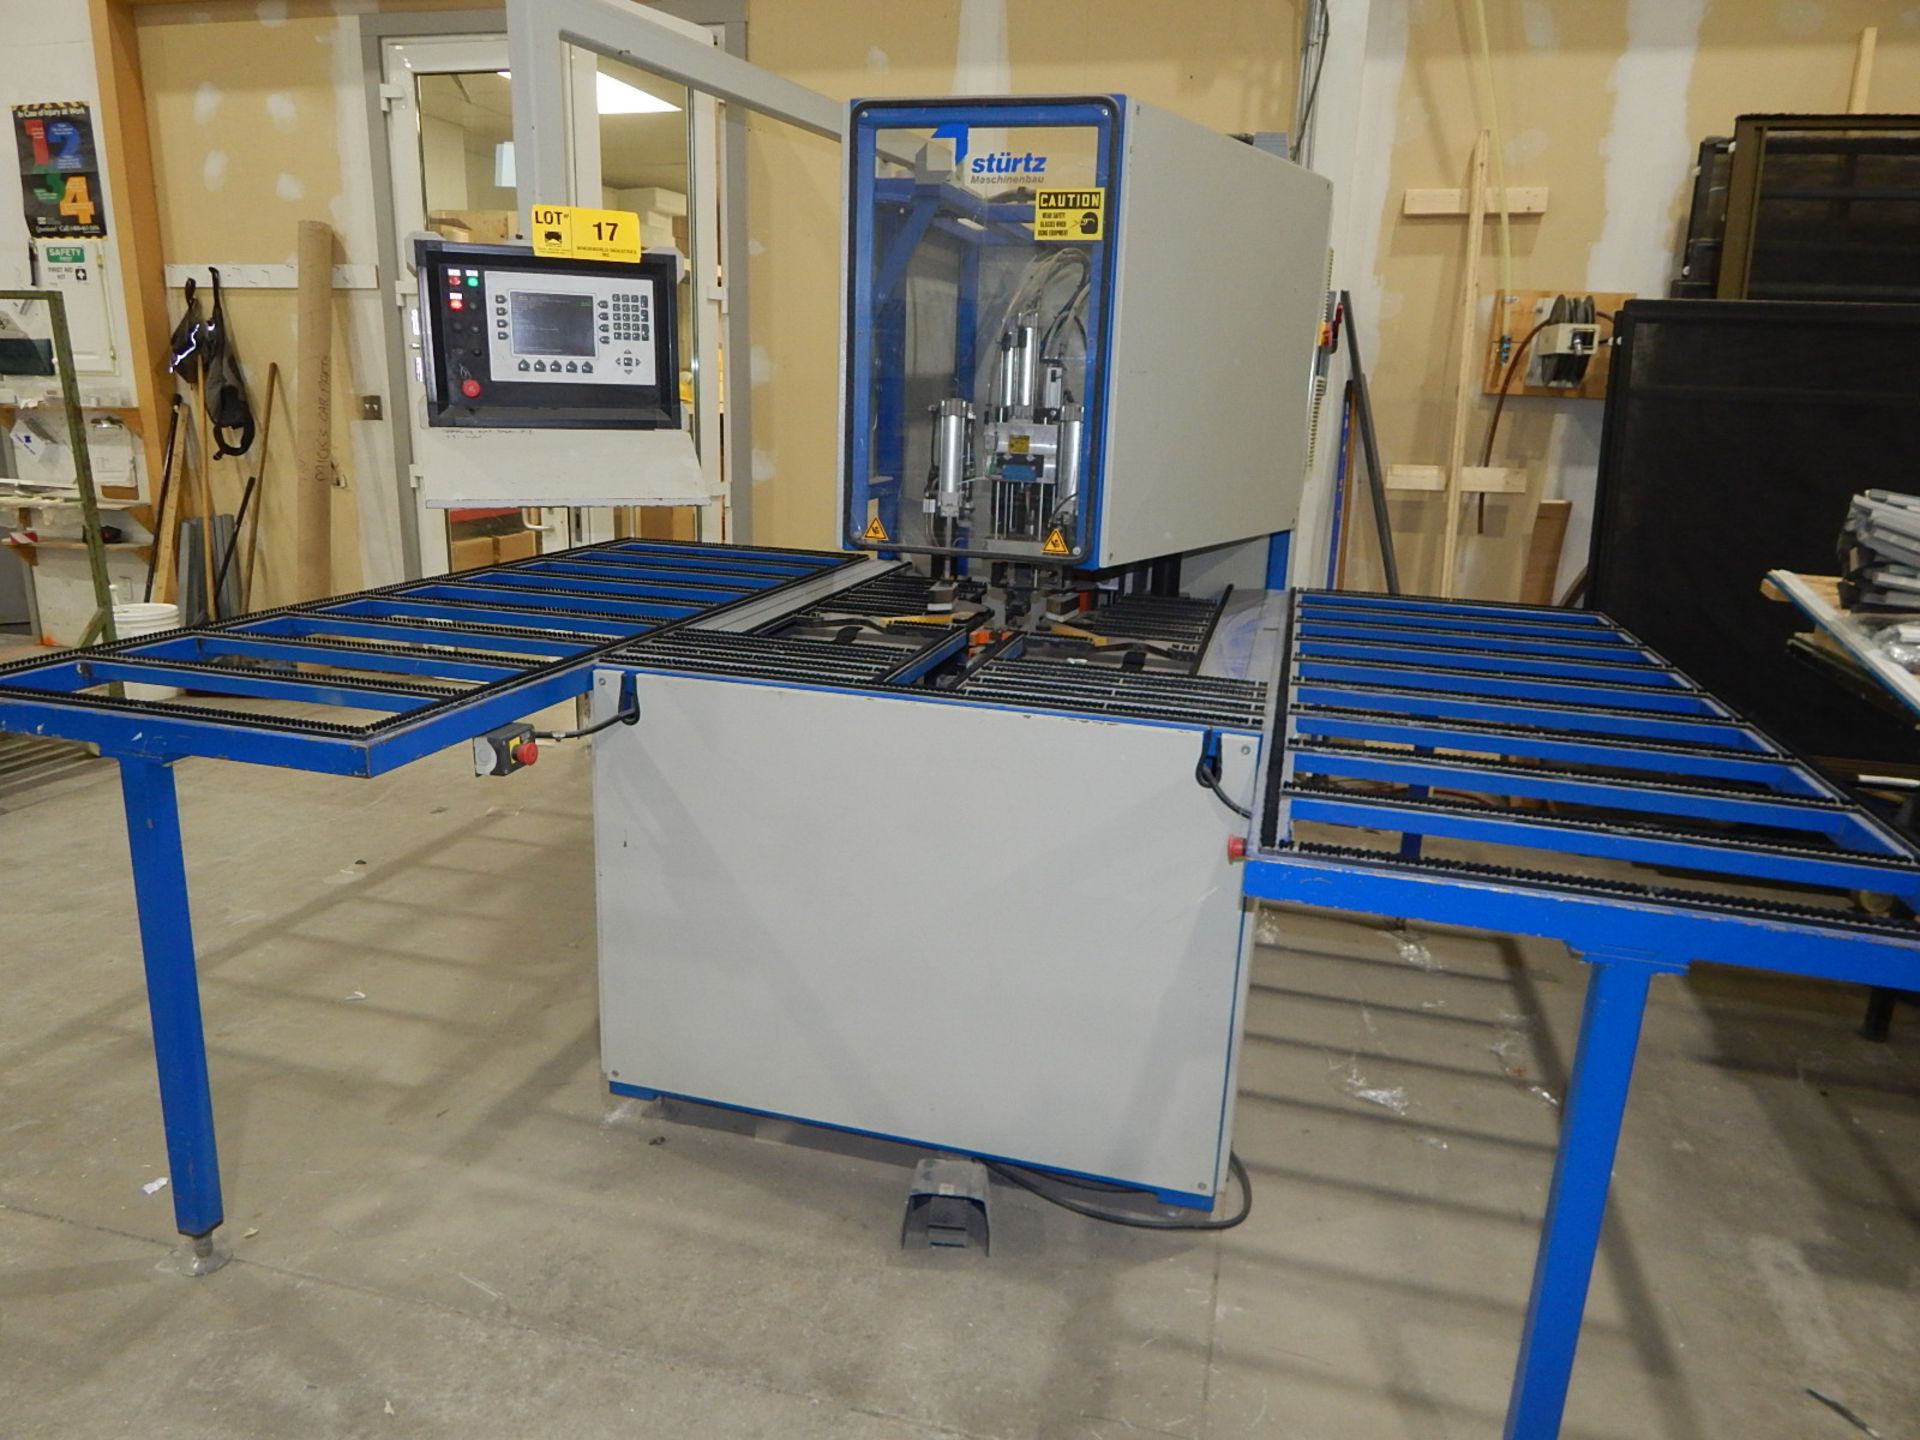 """STURTZ (2003) SE-4AS-TC CNC CORNER CLEANER WITH PC BASED CNC CONTROL, 48""""X65"""" TABLE WITH BRISTLE - Image 5 of 5"""